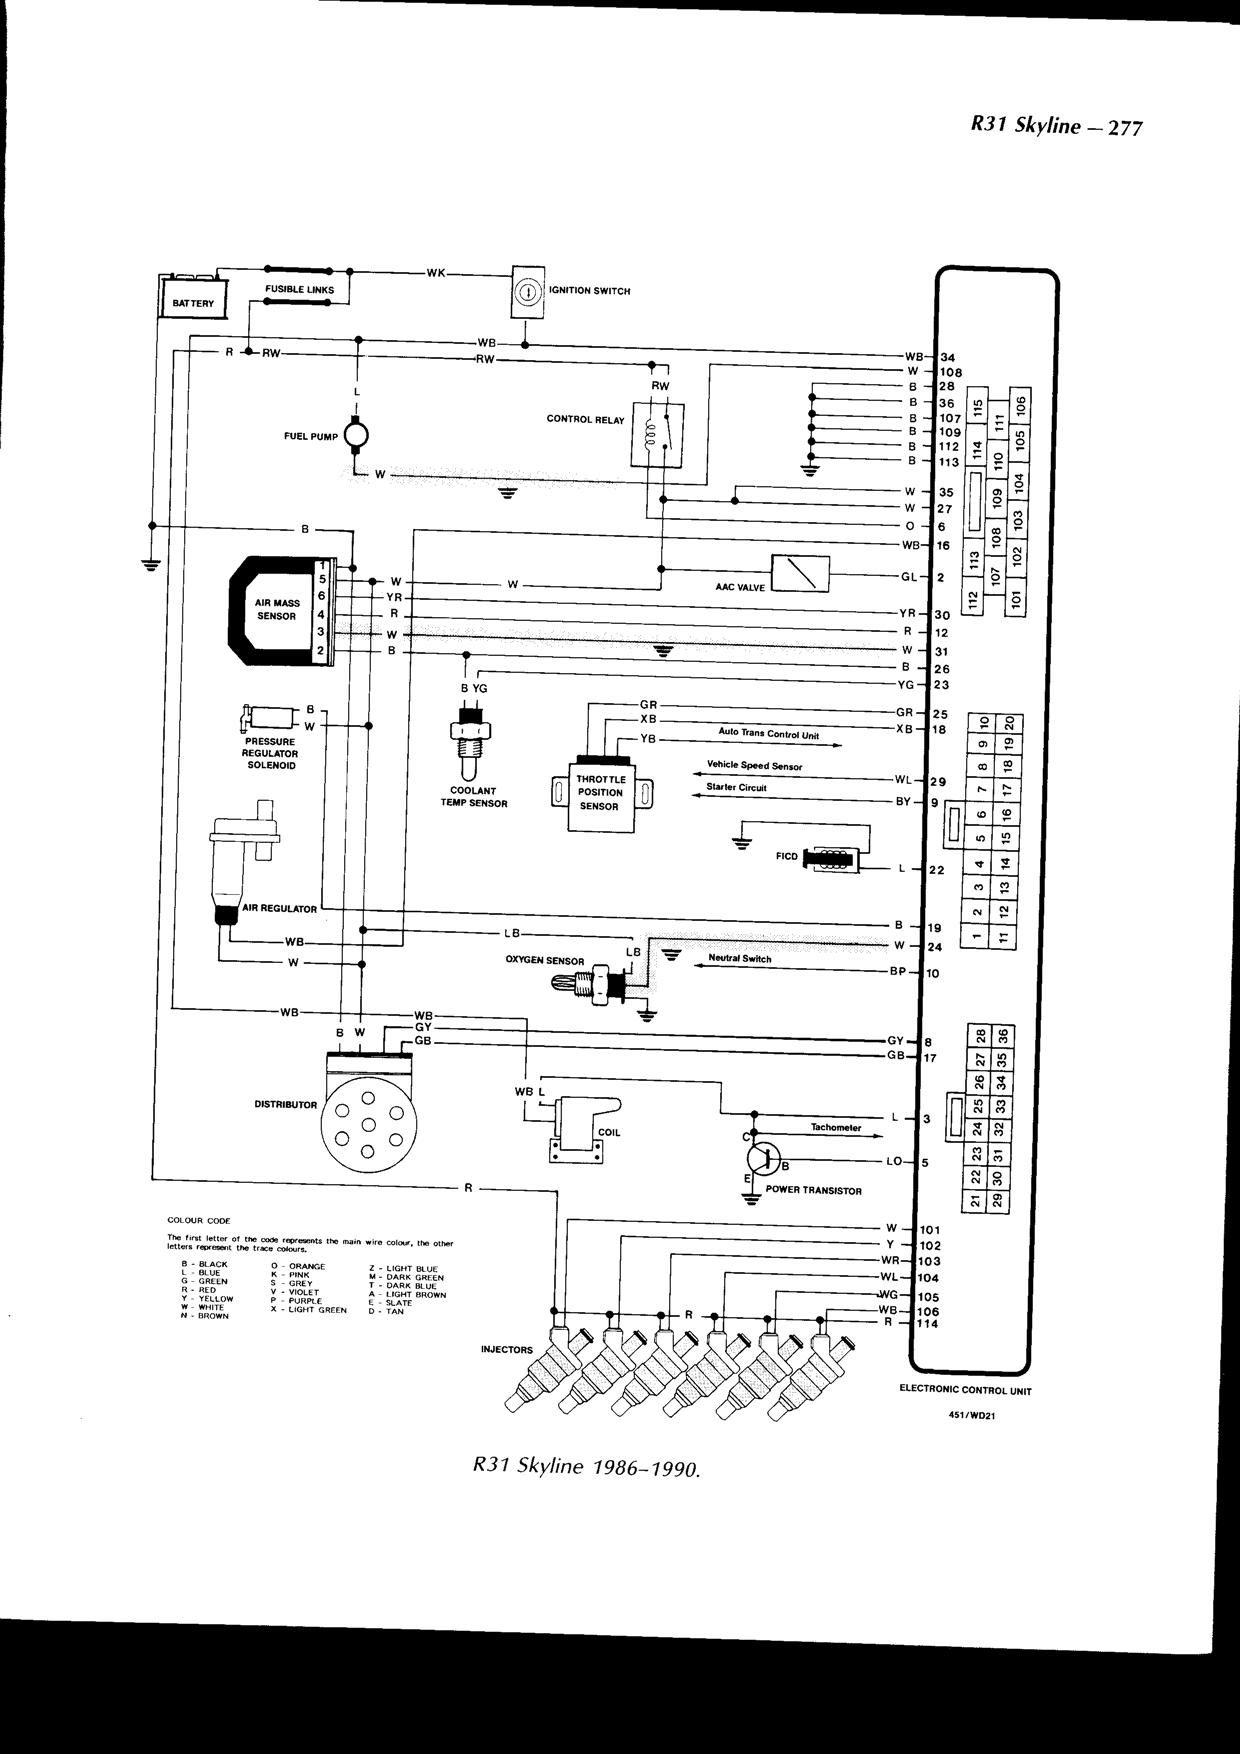 Nissan 1400 electrical wiring diagram nissan pinterest nissan 1400 electrical wiring diagram cheapraybanclubmaster Choice Image